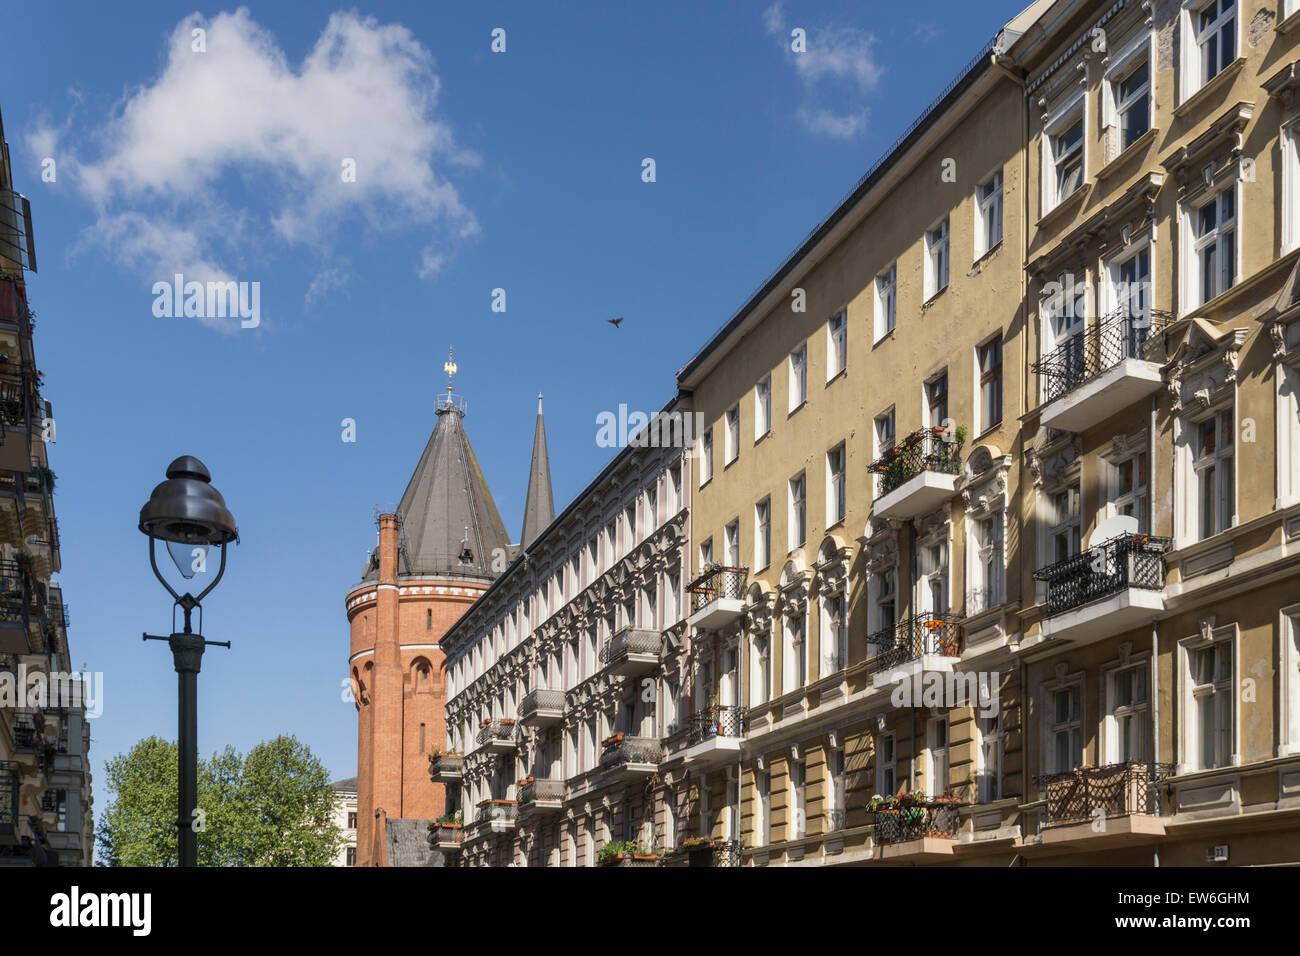 Chamisso district, Old House Facades,  Kreuzberg, DTK Water Tower,  Berlin - Stock Image